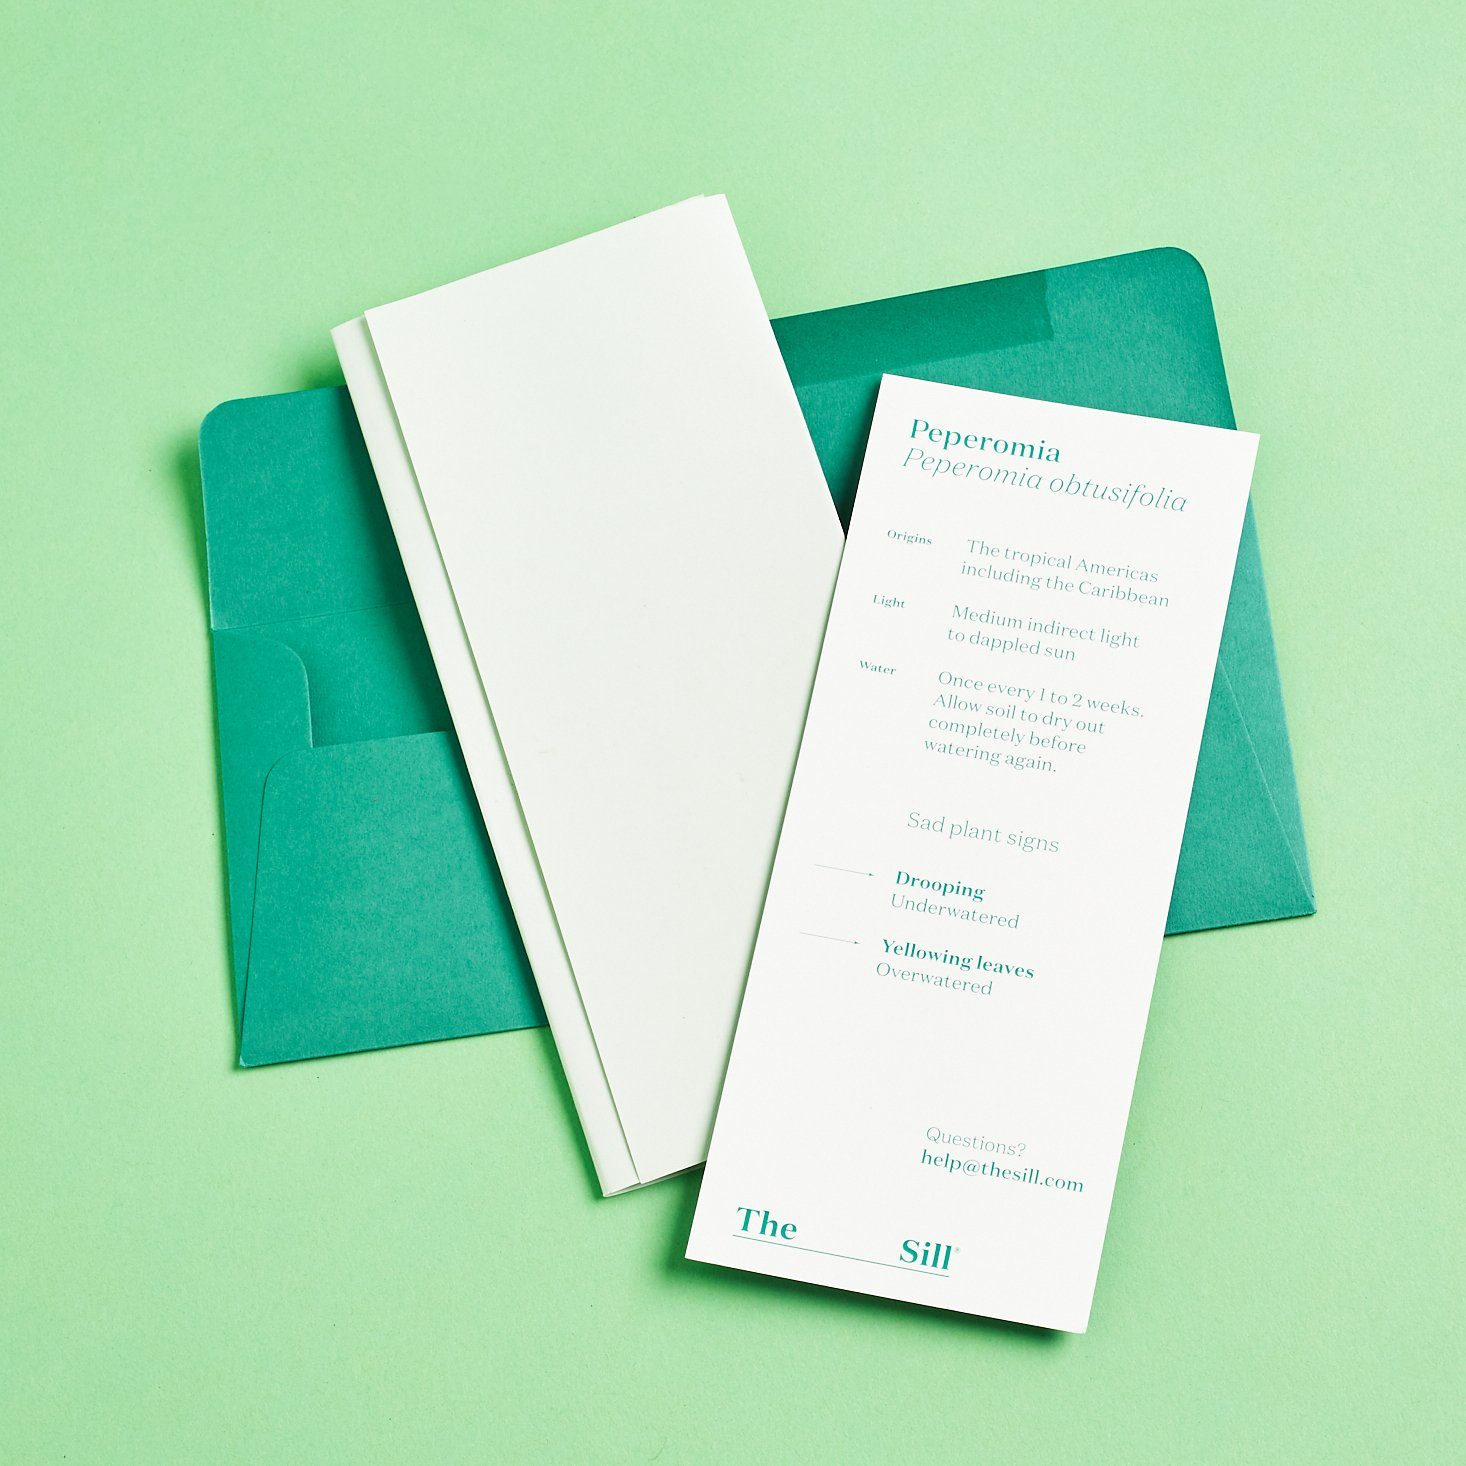 plantinfo cards in teal envelope